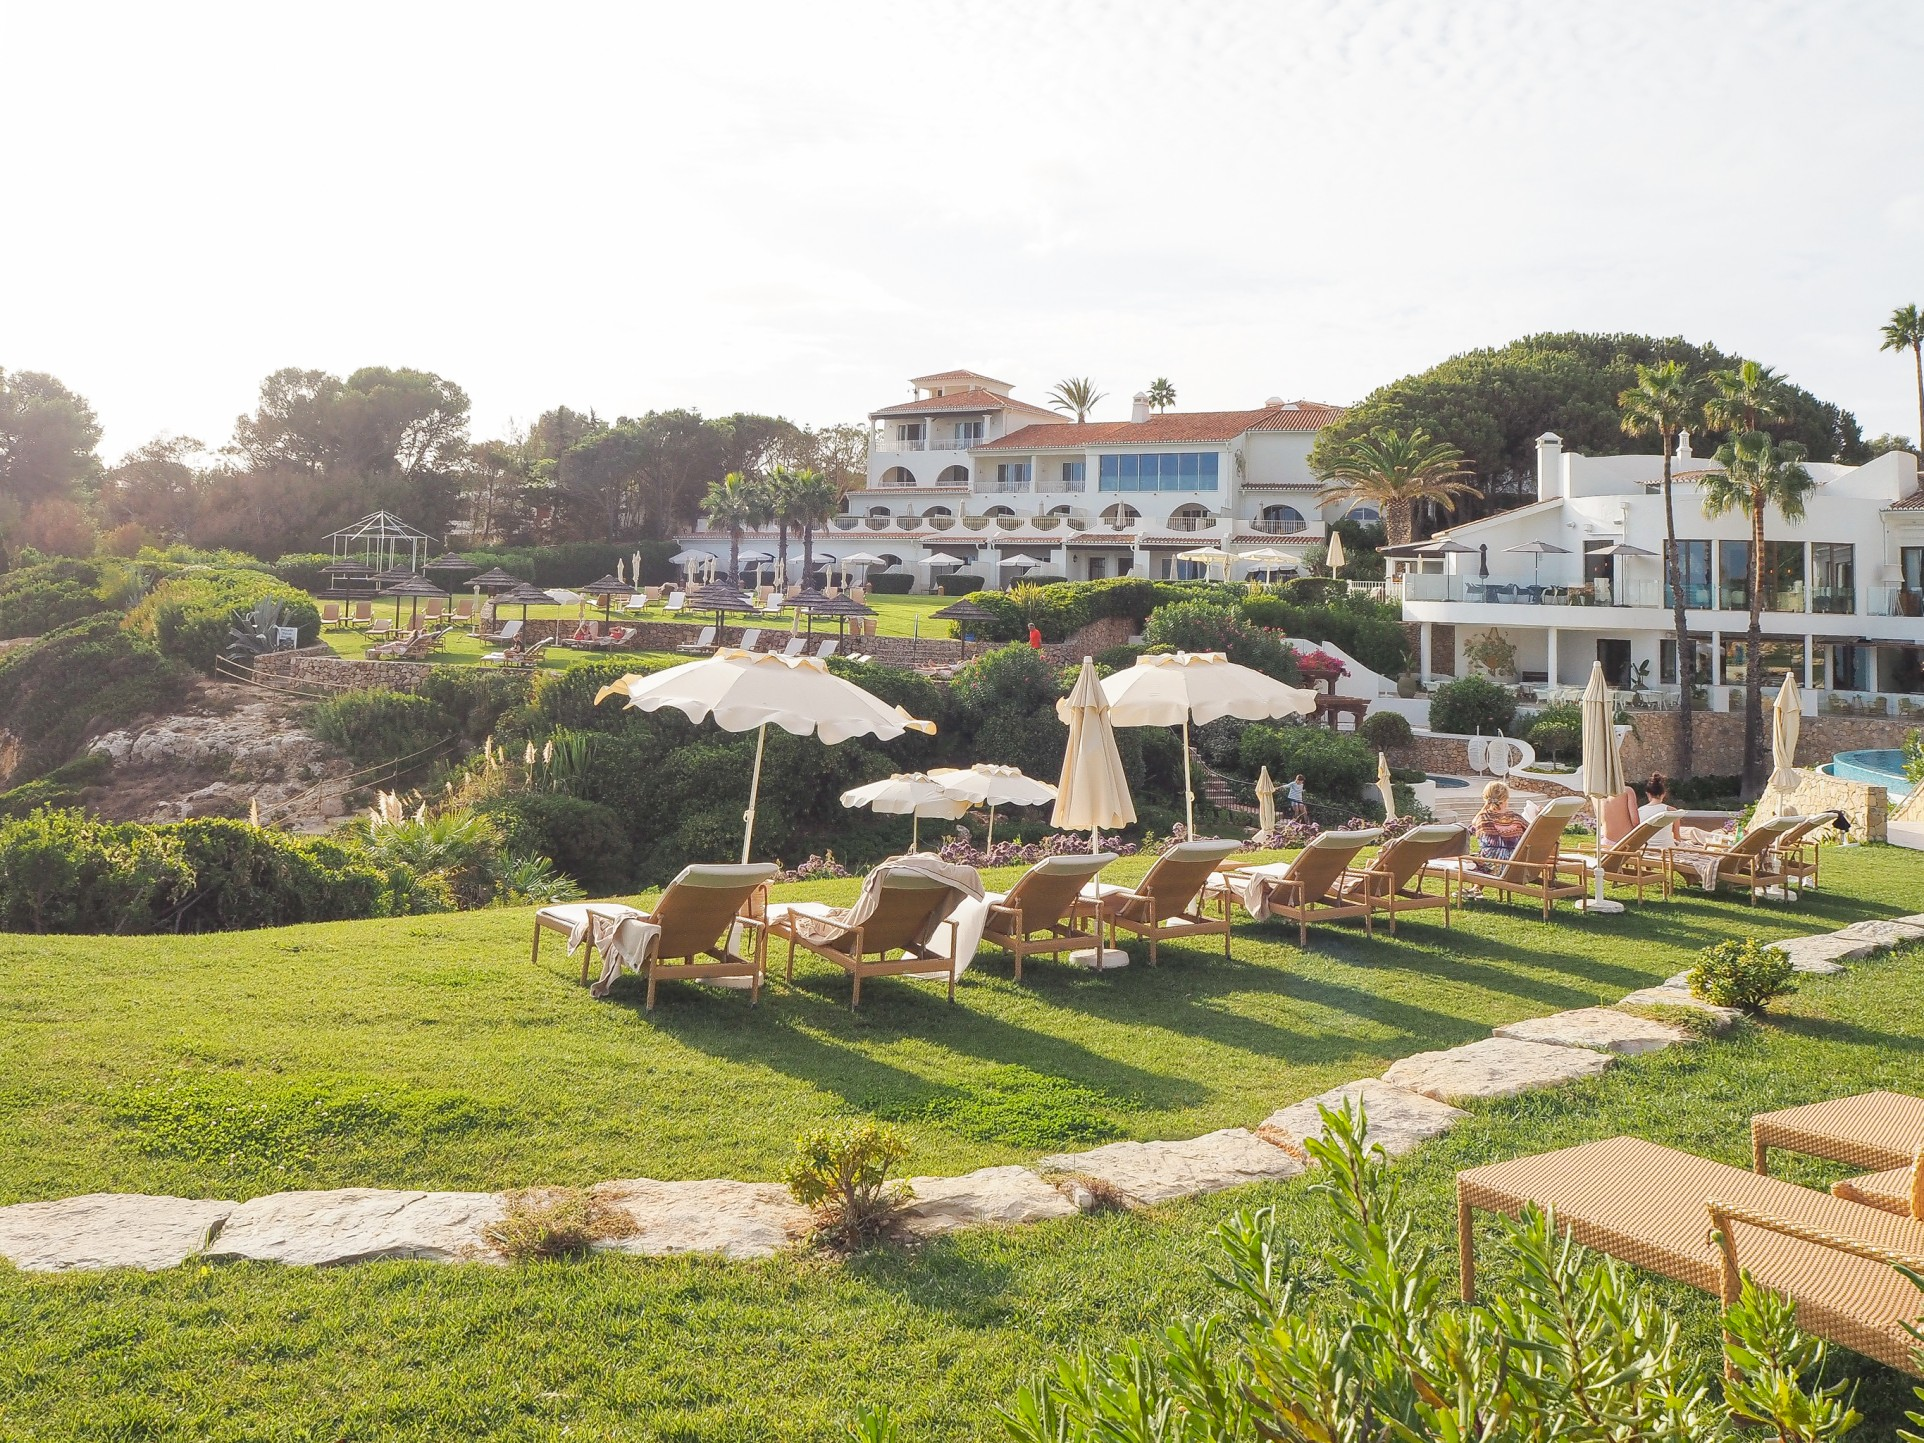 Fitness On Toast Healthy Detox Vila Vita Parc Portugal Press Trip Fit Holiday Active Break Trip Luxury Portugal Algarve Retreat-19